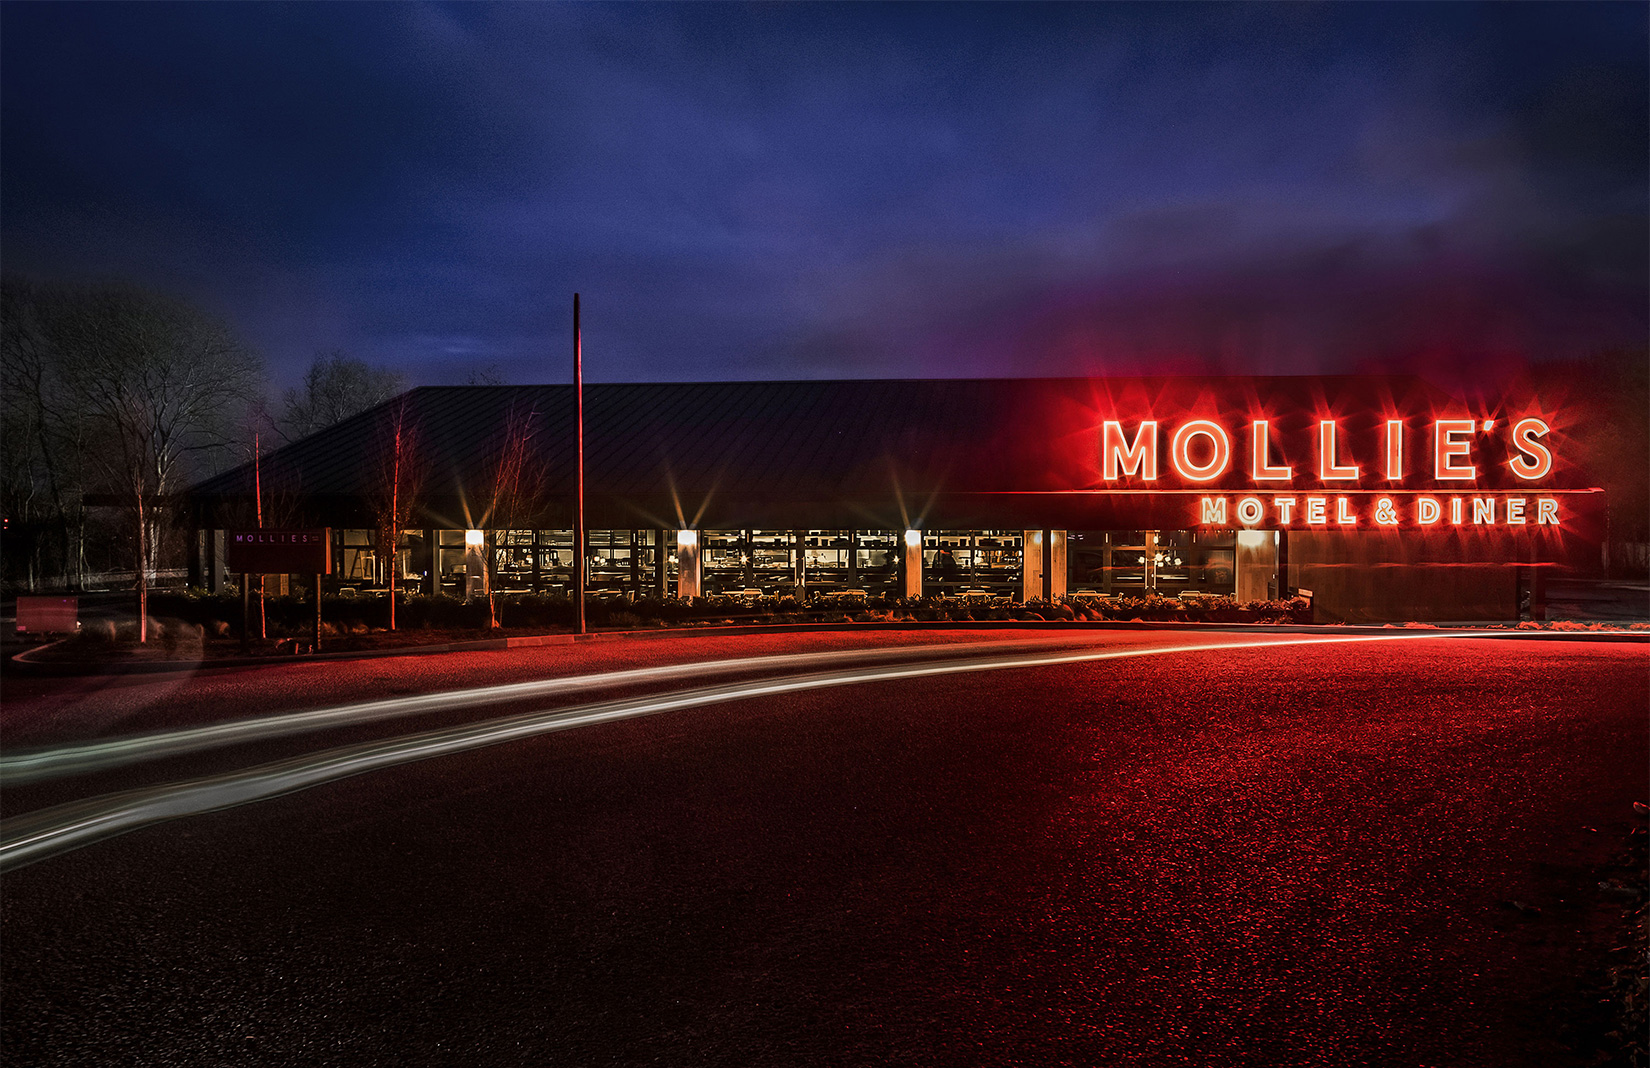 Mollie's Motel & Diner by Soho House offers 'budget luxury' in Oxfordshire